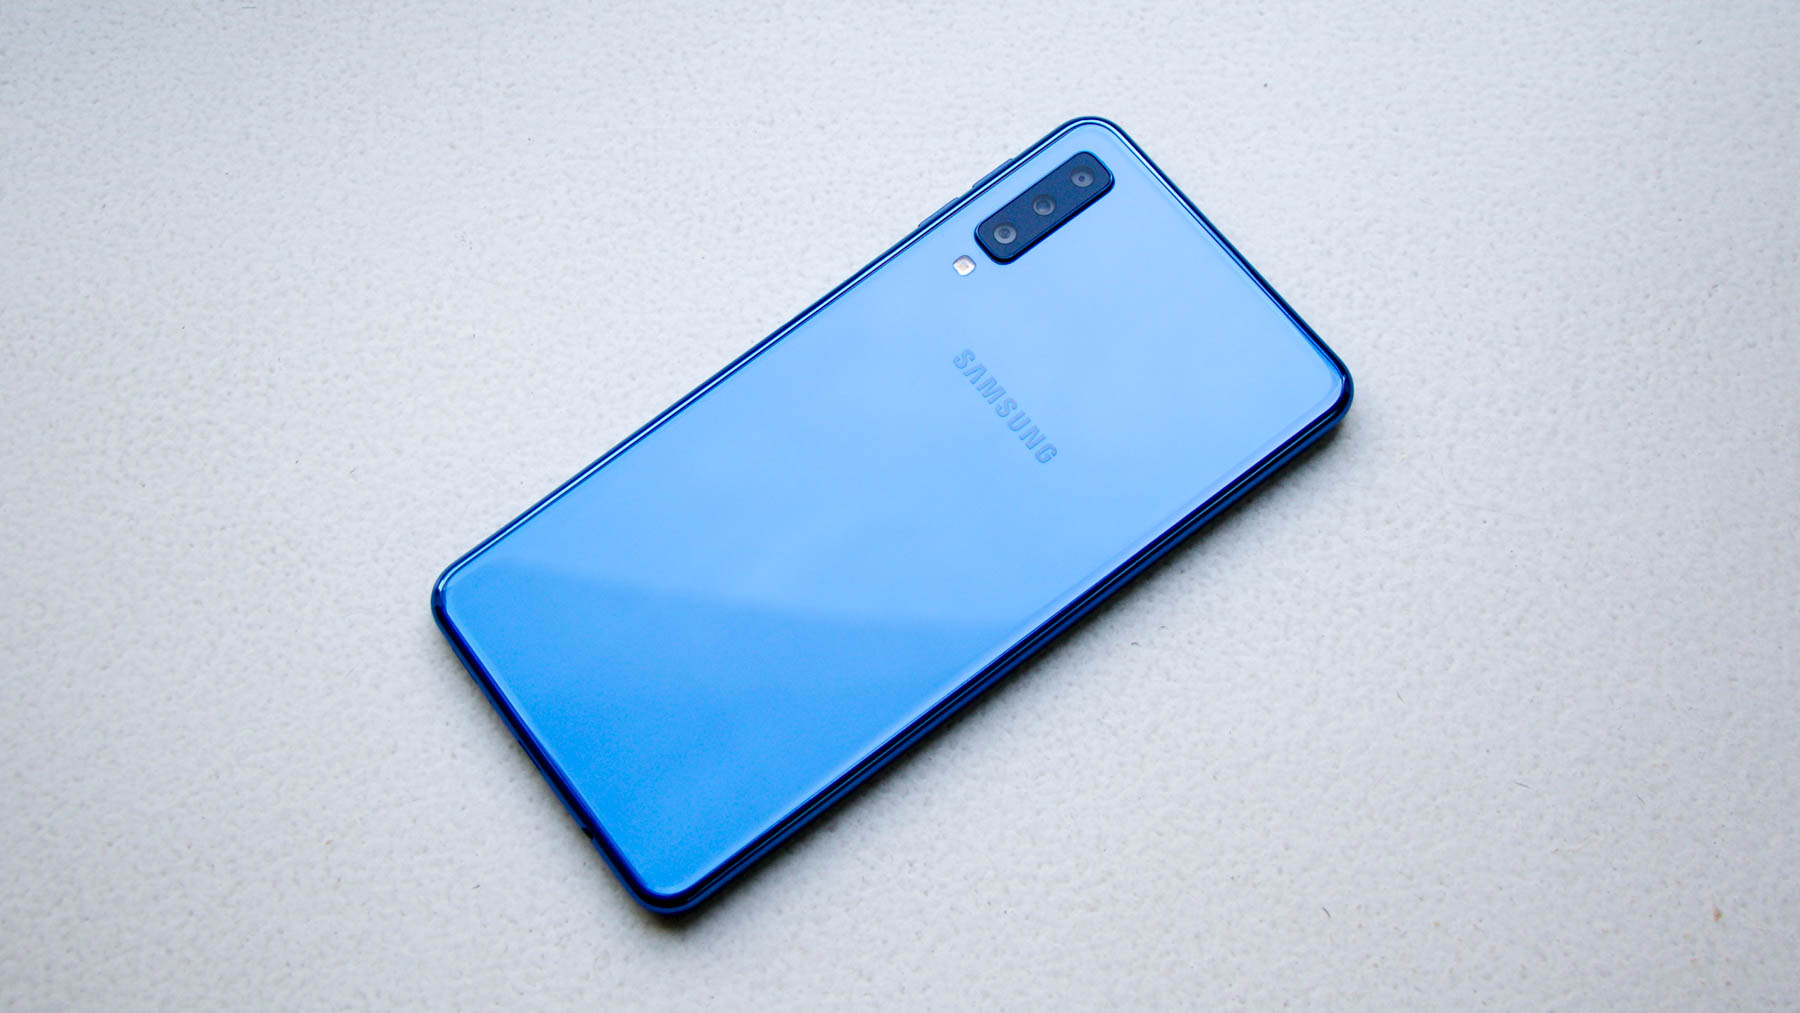 Traseira do Galaxy A7 (2018)